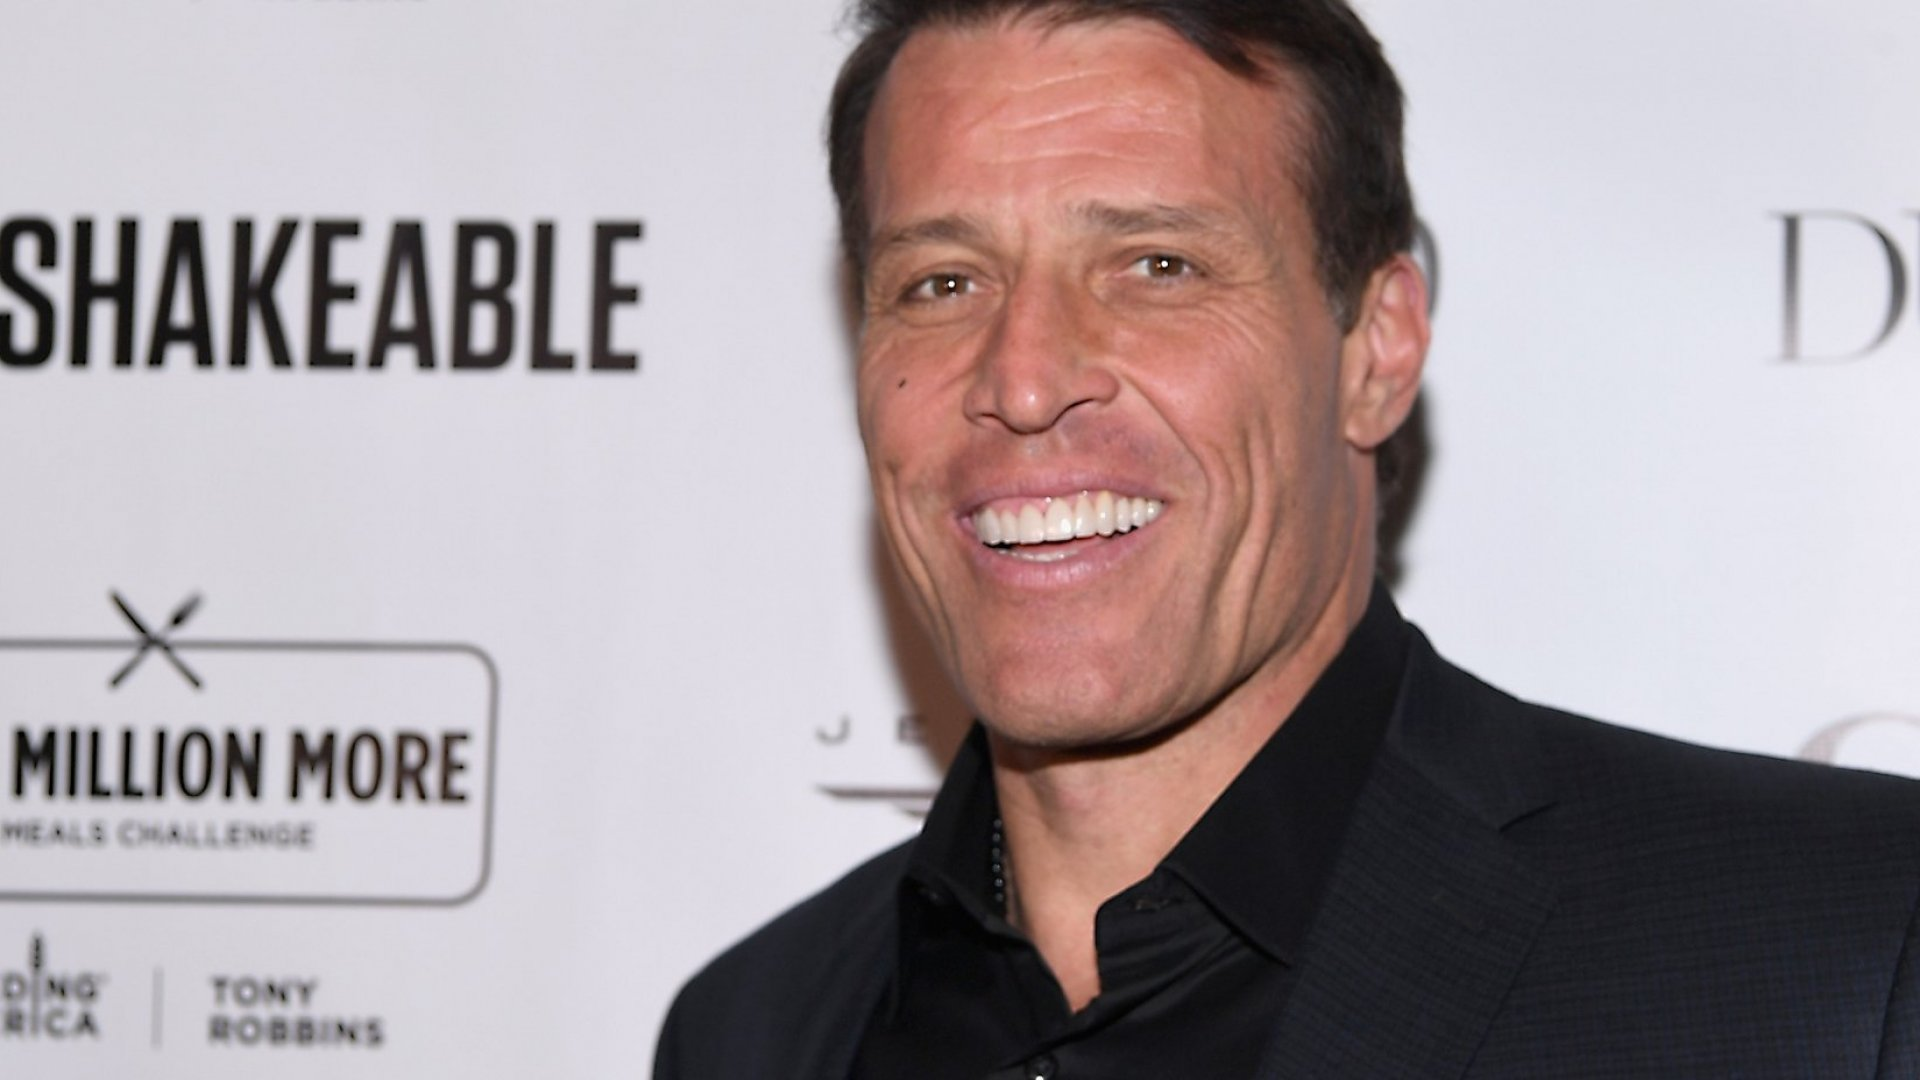 Tony Robbins Burns a Staggering Number of Calories During Live Events. I Tried His Fitness and Diet Routine to Find Out How